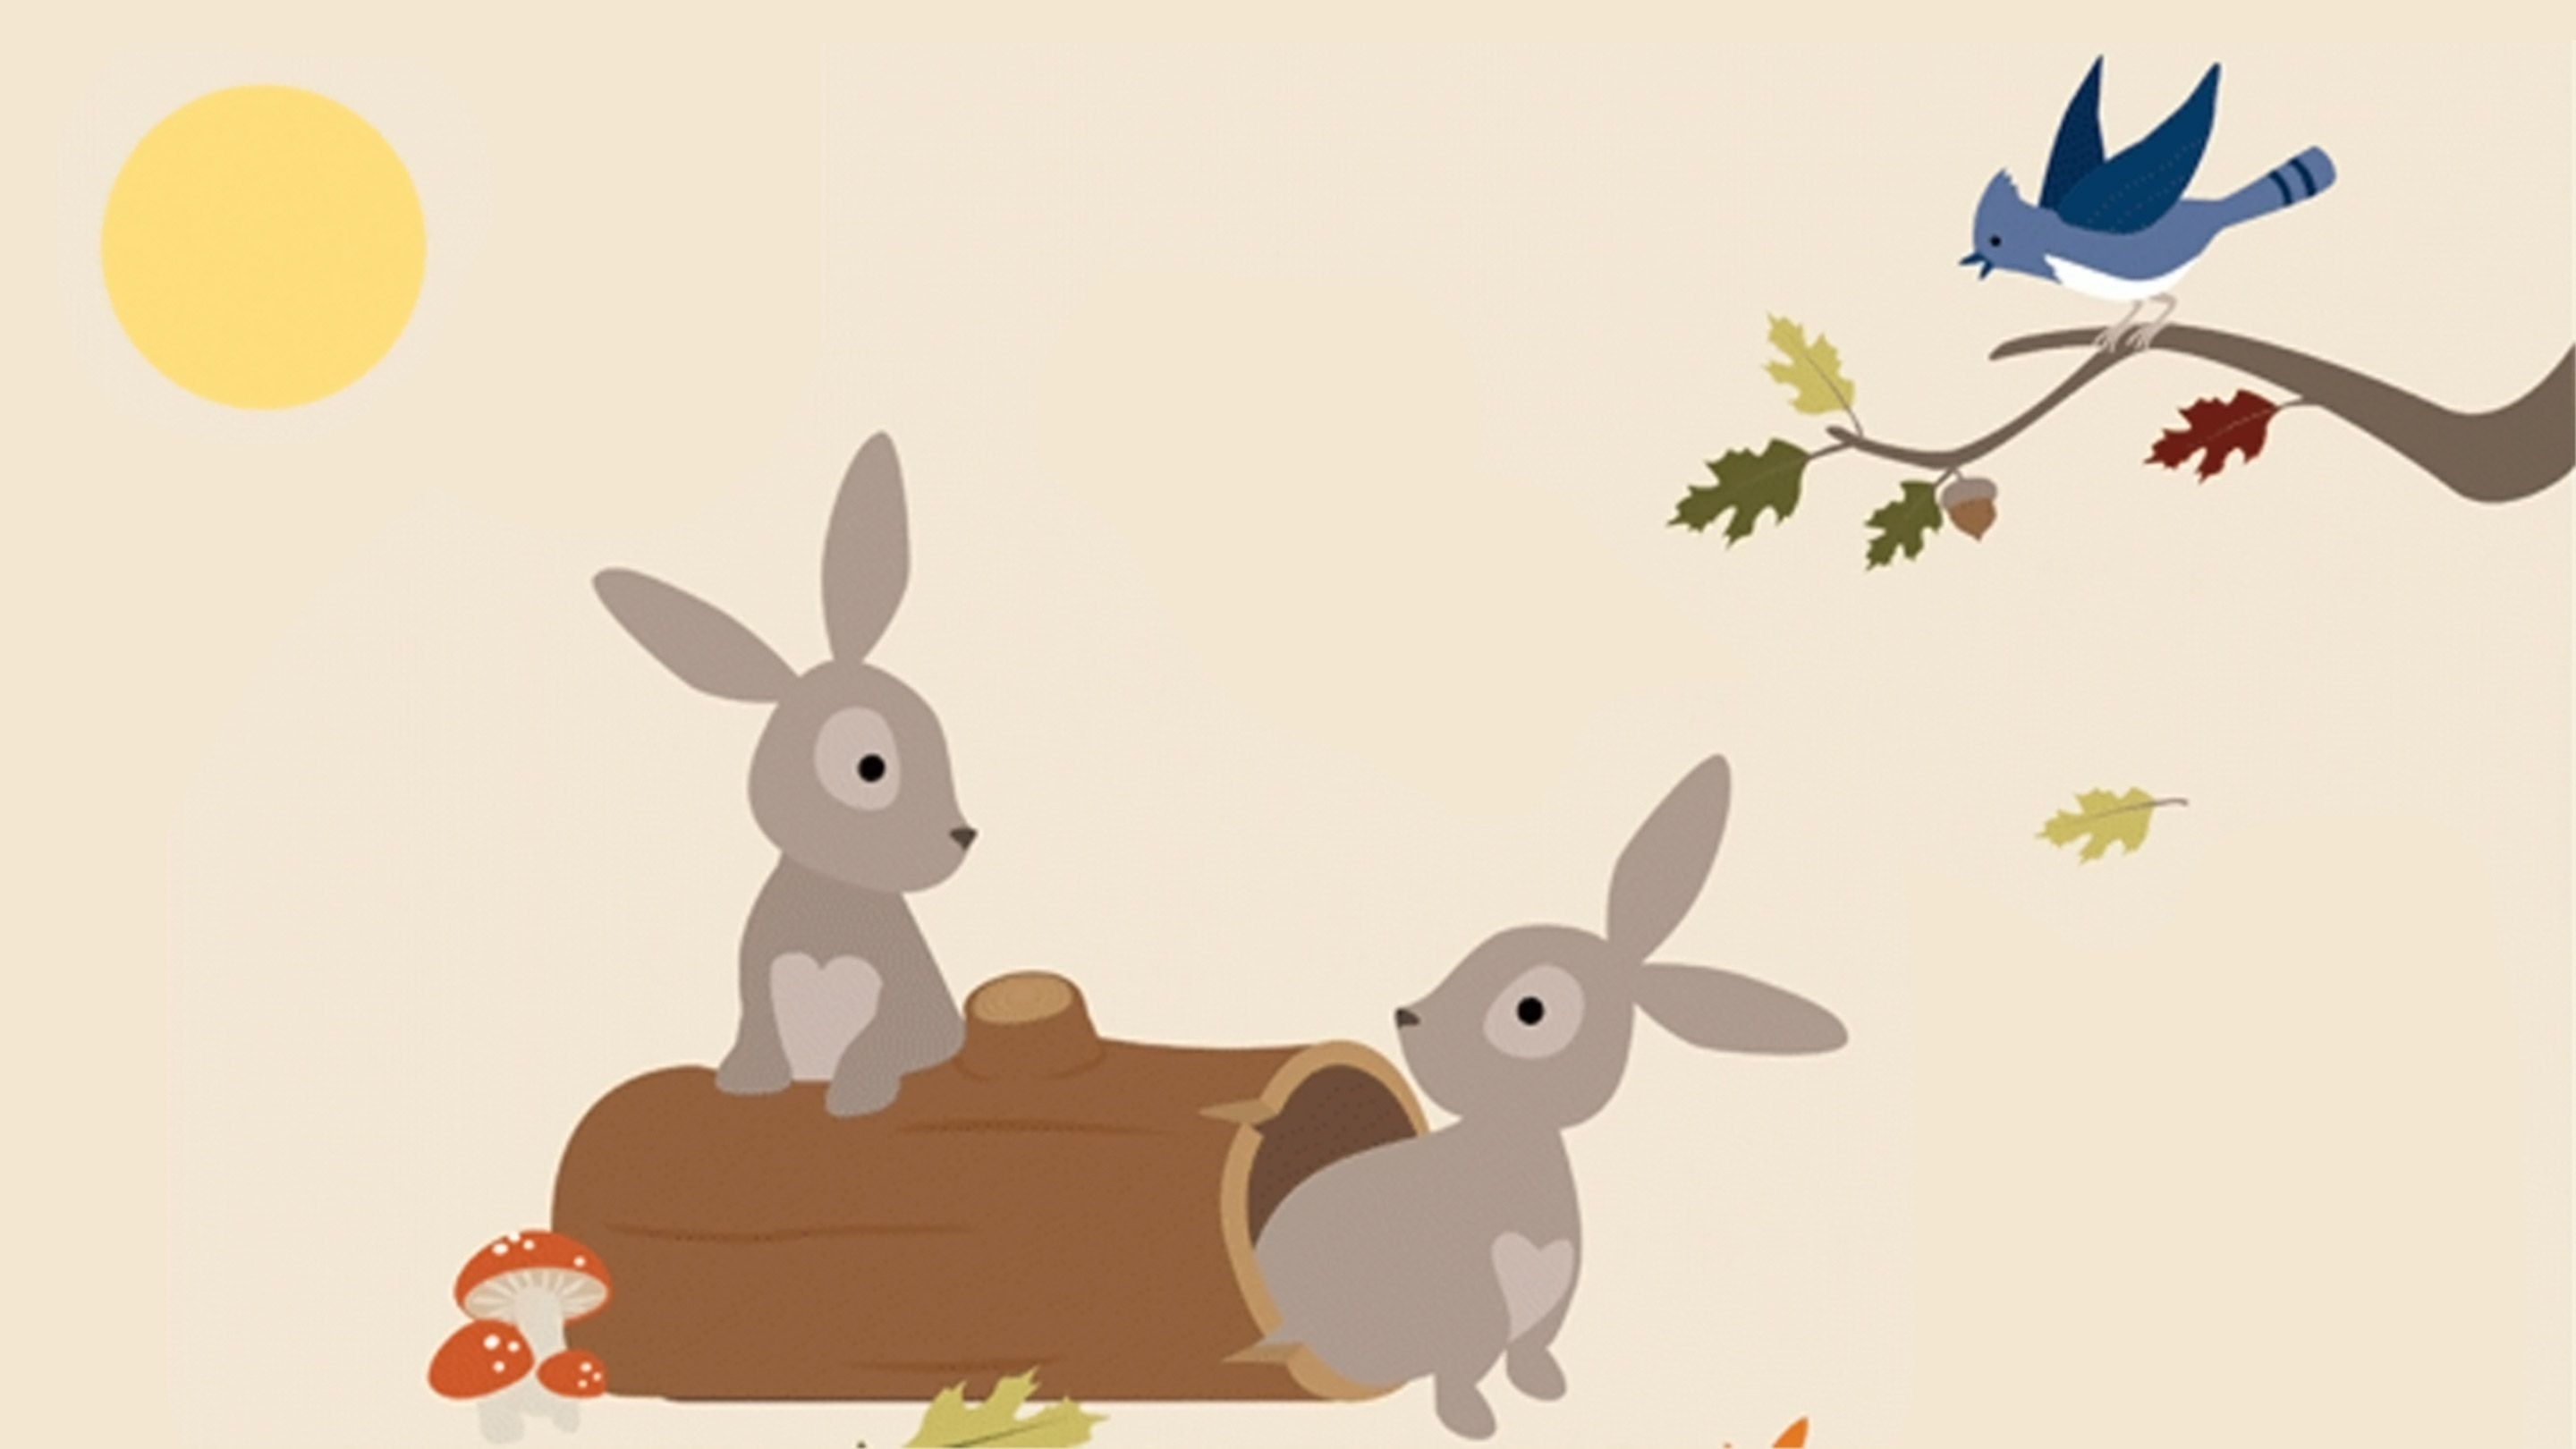 Illustration of one rabbit on a log and another next to it